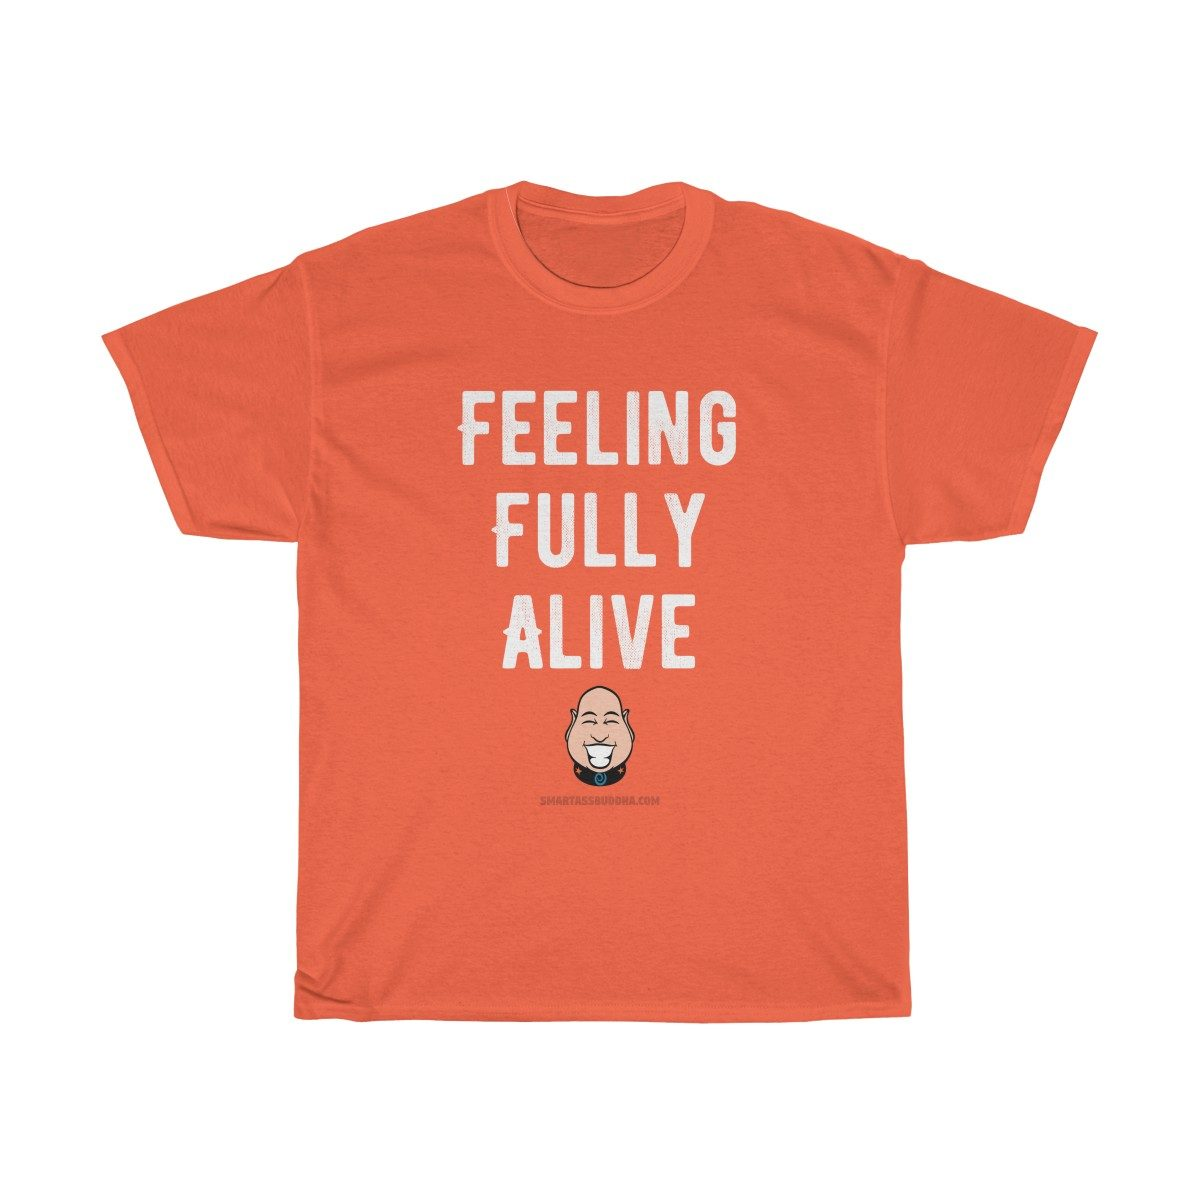 Positive-tshirt-gifts-for-her-women-men-dad-mom-him-funny-sayings-Buddha-tshirt-quotes-feeling-fully-alive-orange